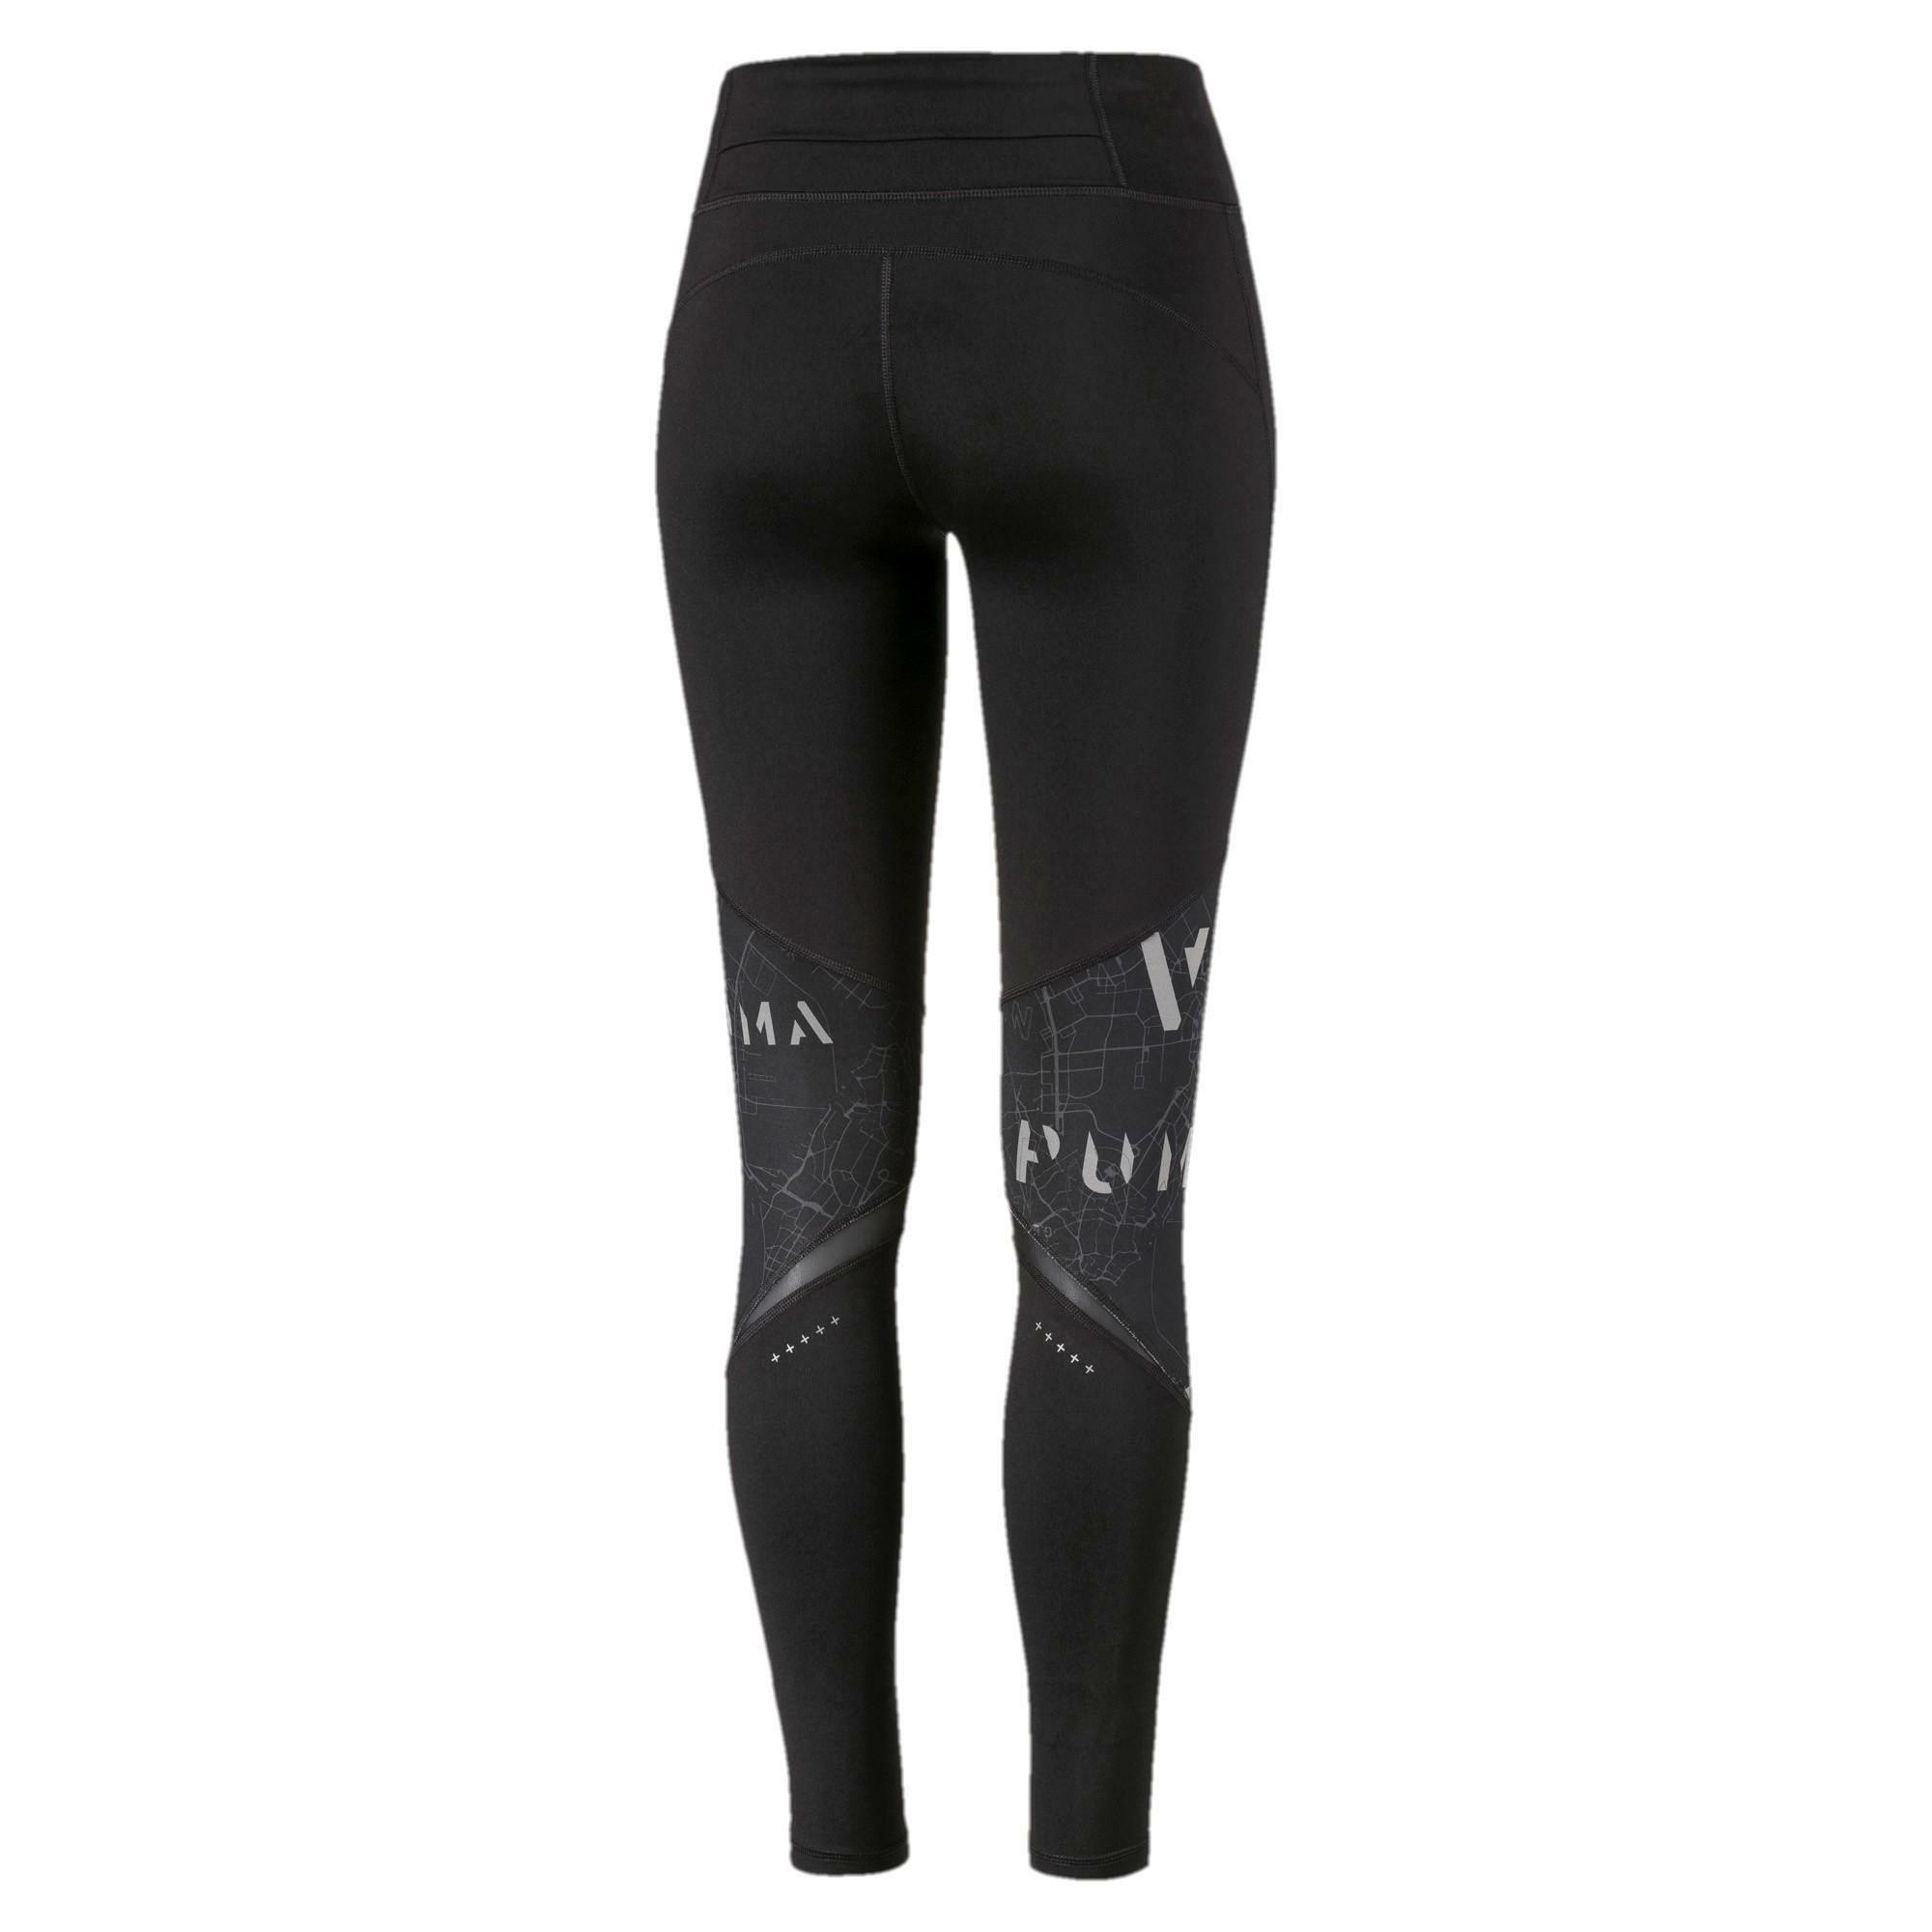 puma puma leggins donna graphic